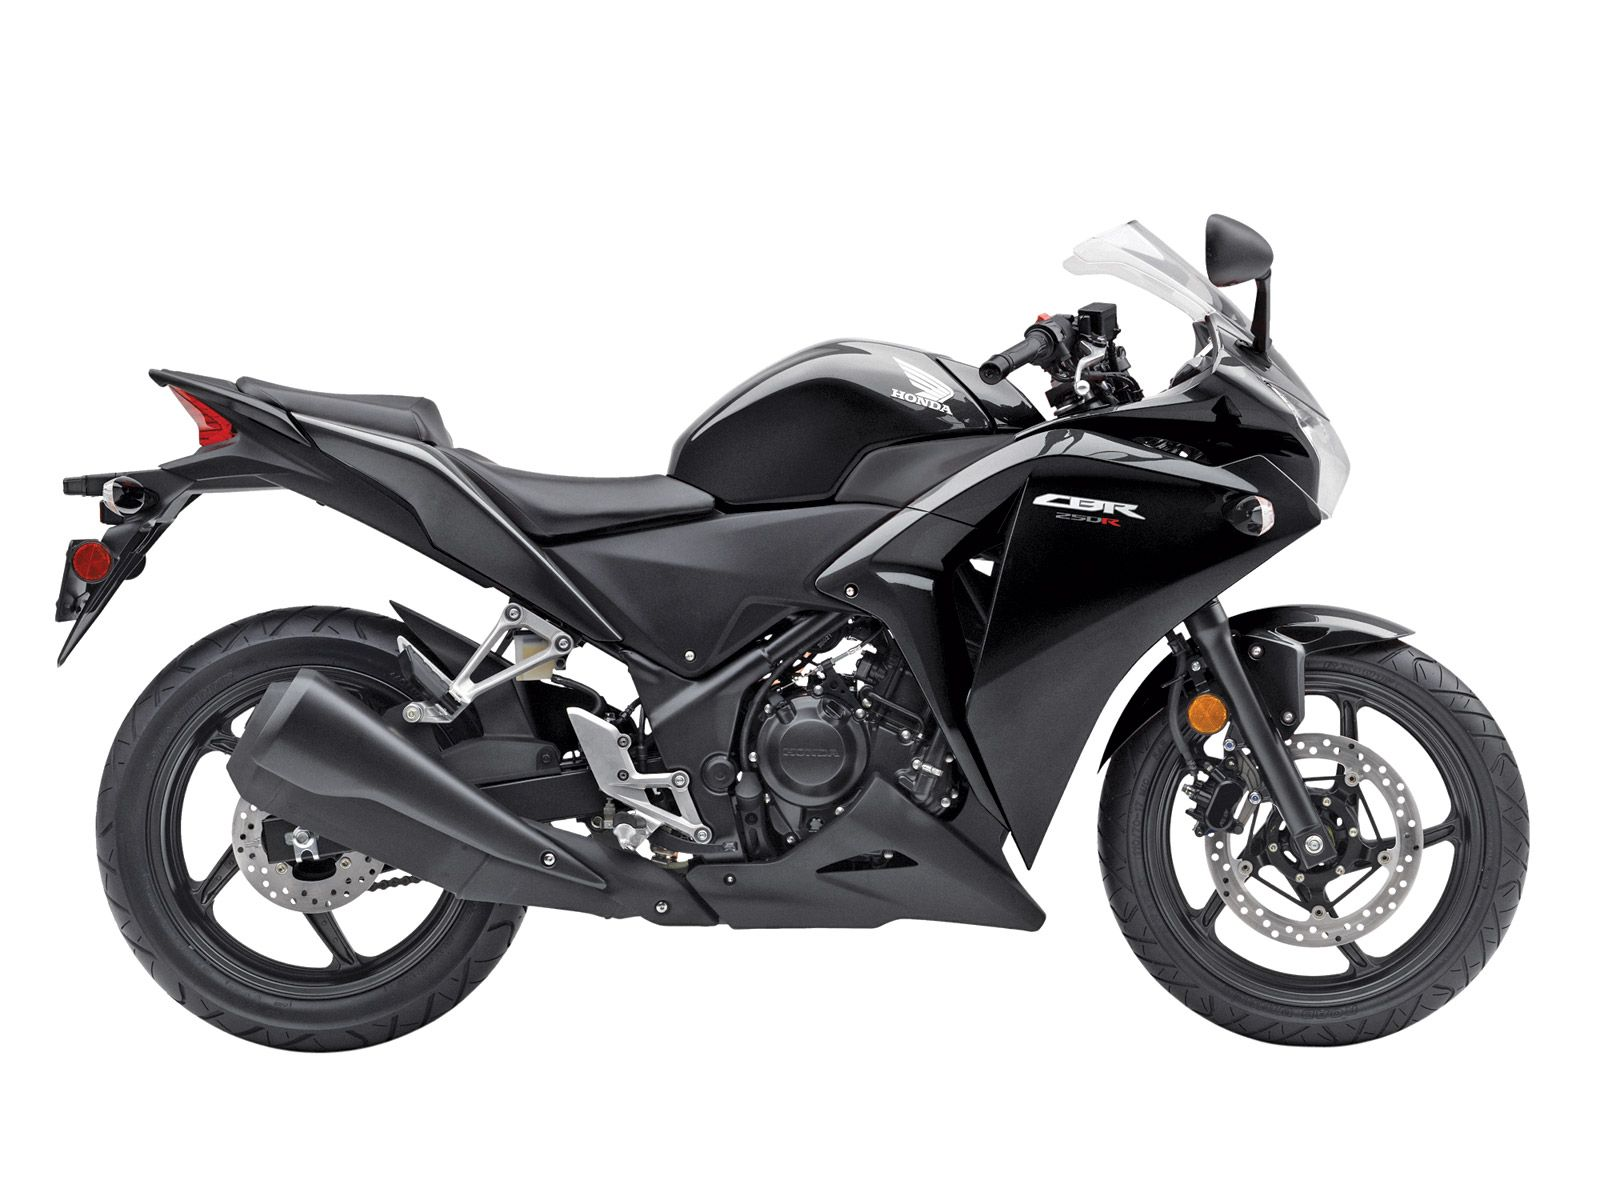 Honda CBR500R all black with turquoise rims yesssss